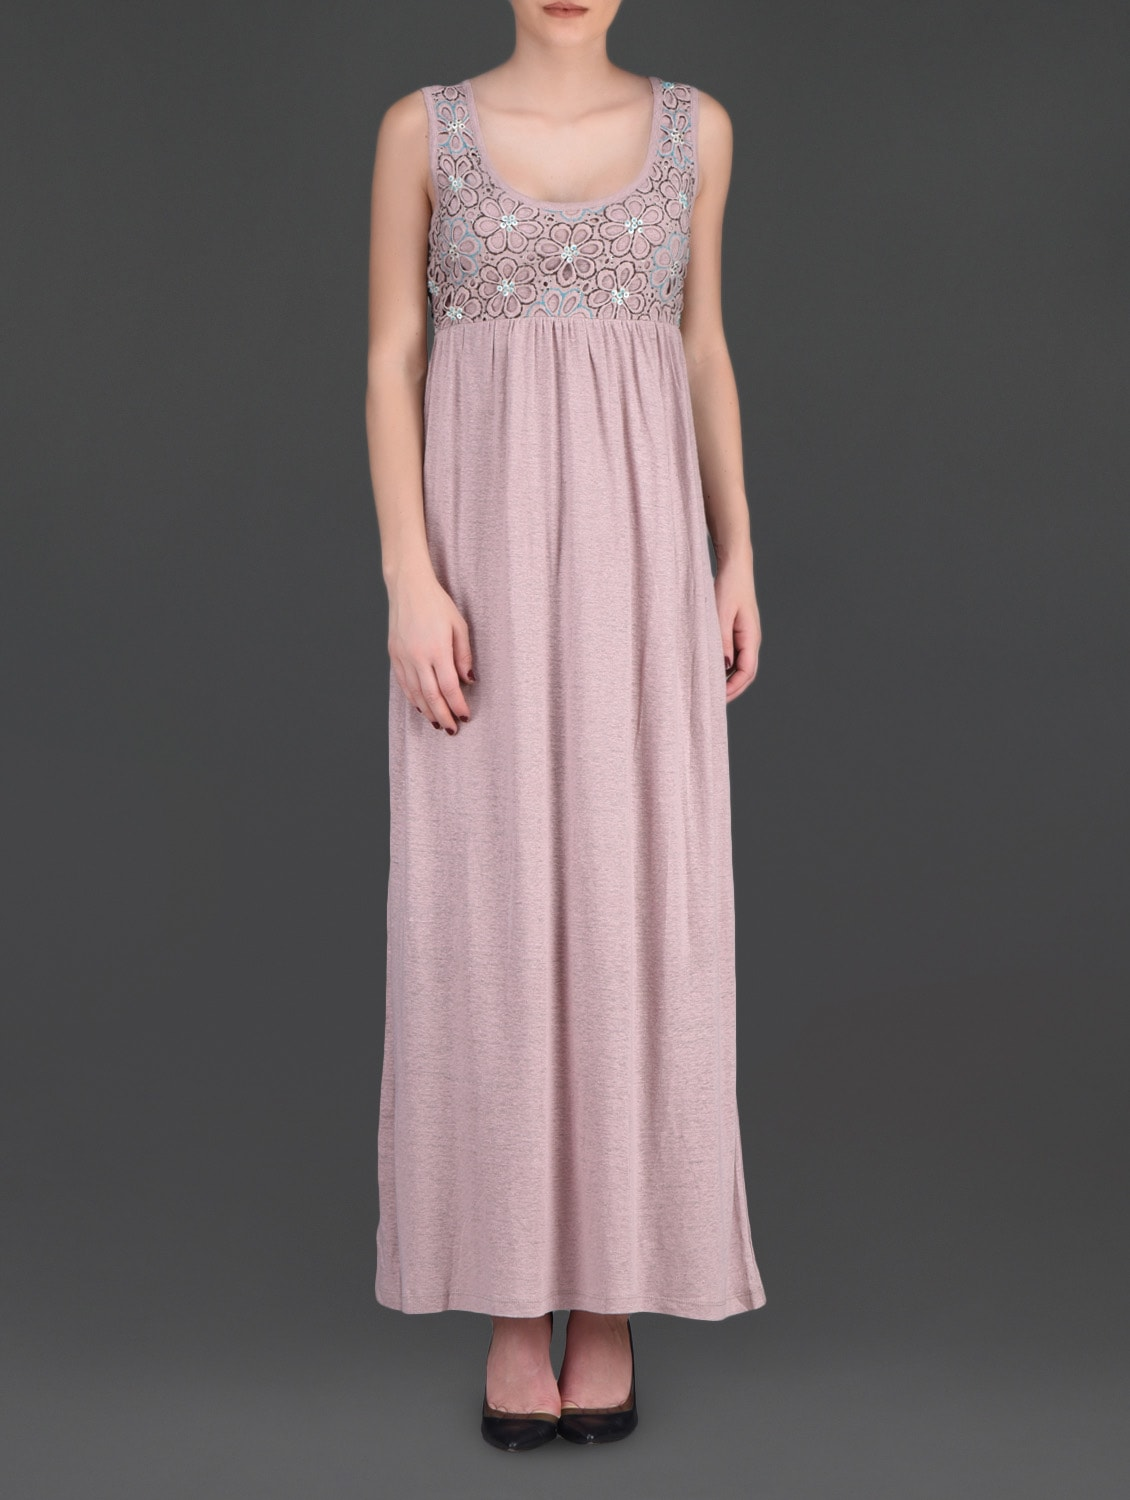 Dusty Pink Floral Cutwork Maxi Dress - LABEL Ritu Kumar